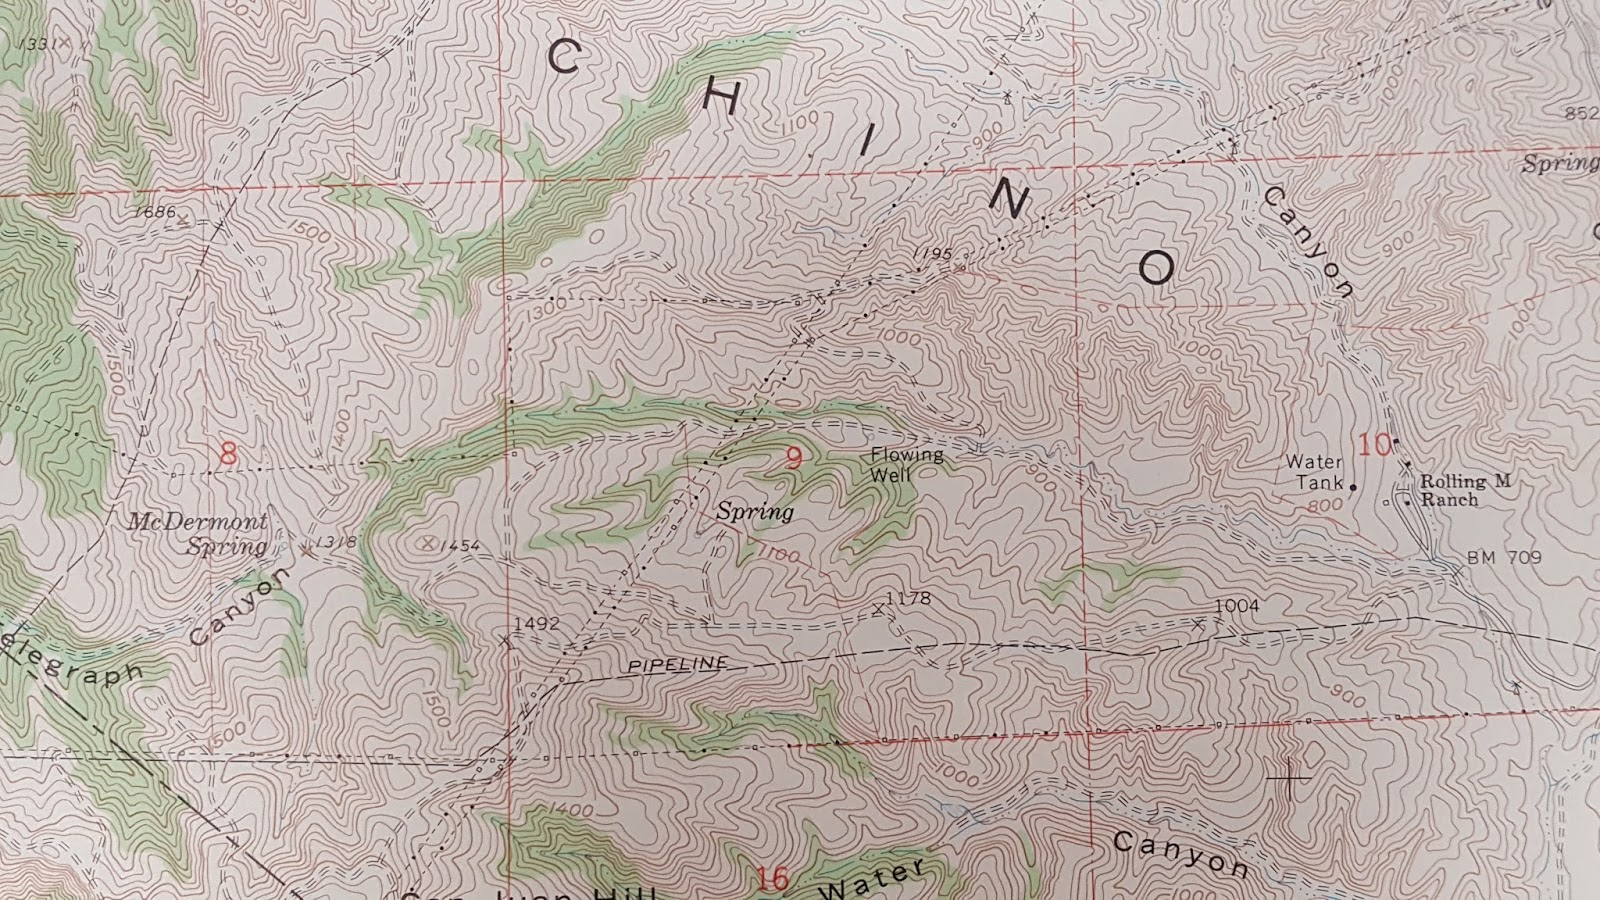 in what is now the chino hills state park area the section of map from rolling m ranch park headquarters on the right to mcdermont spring which is near